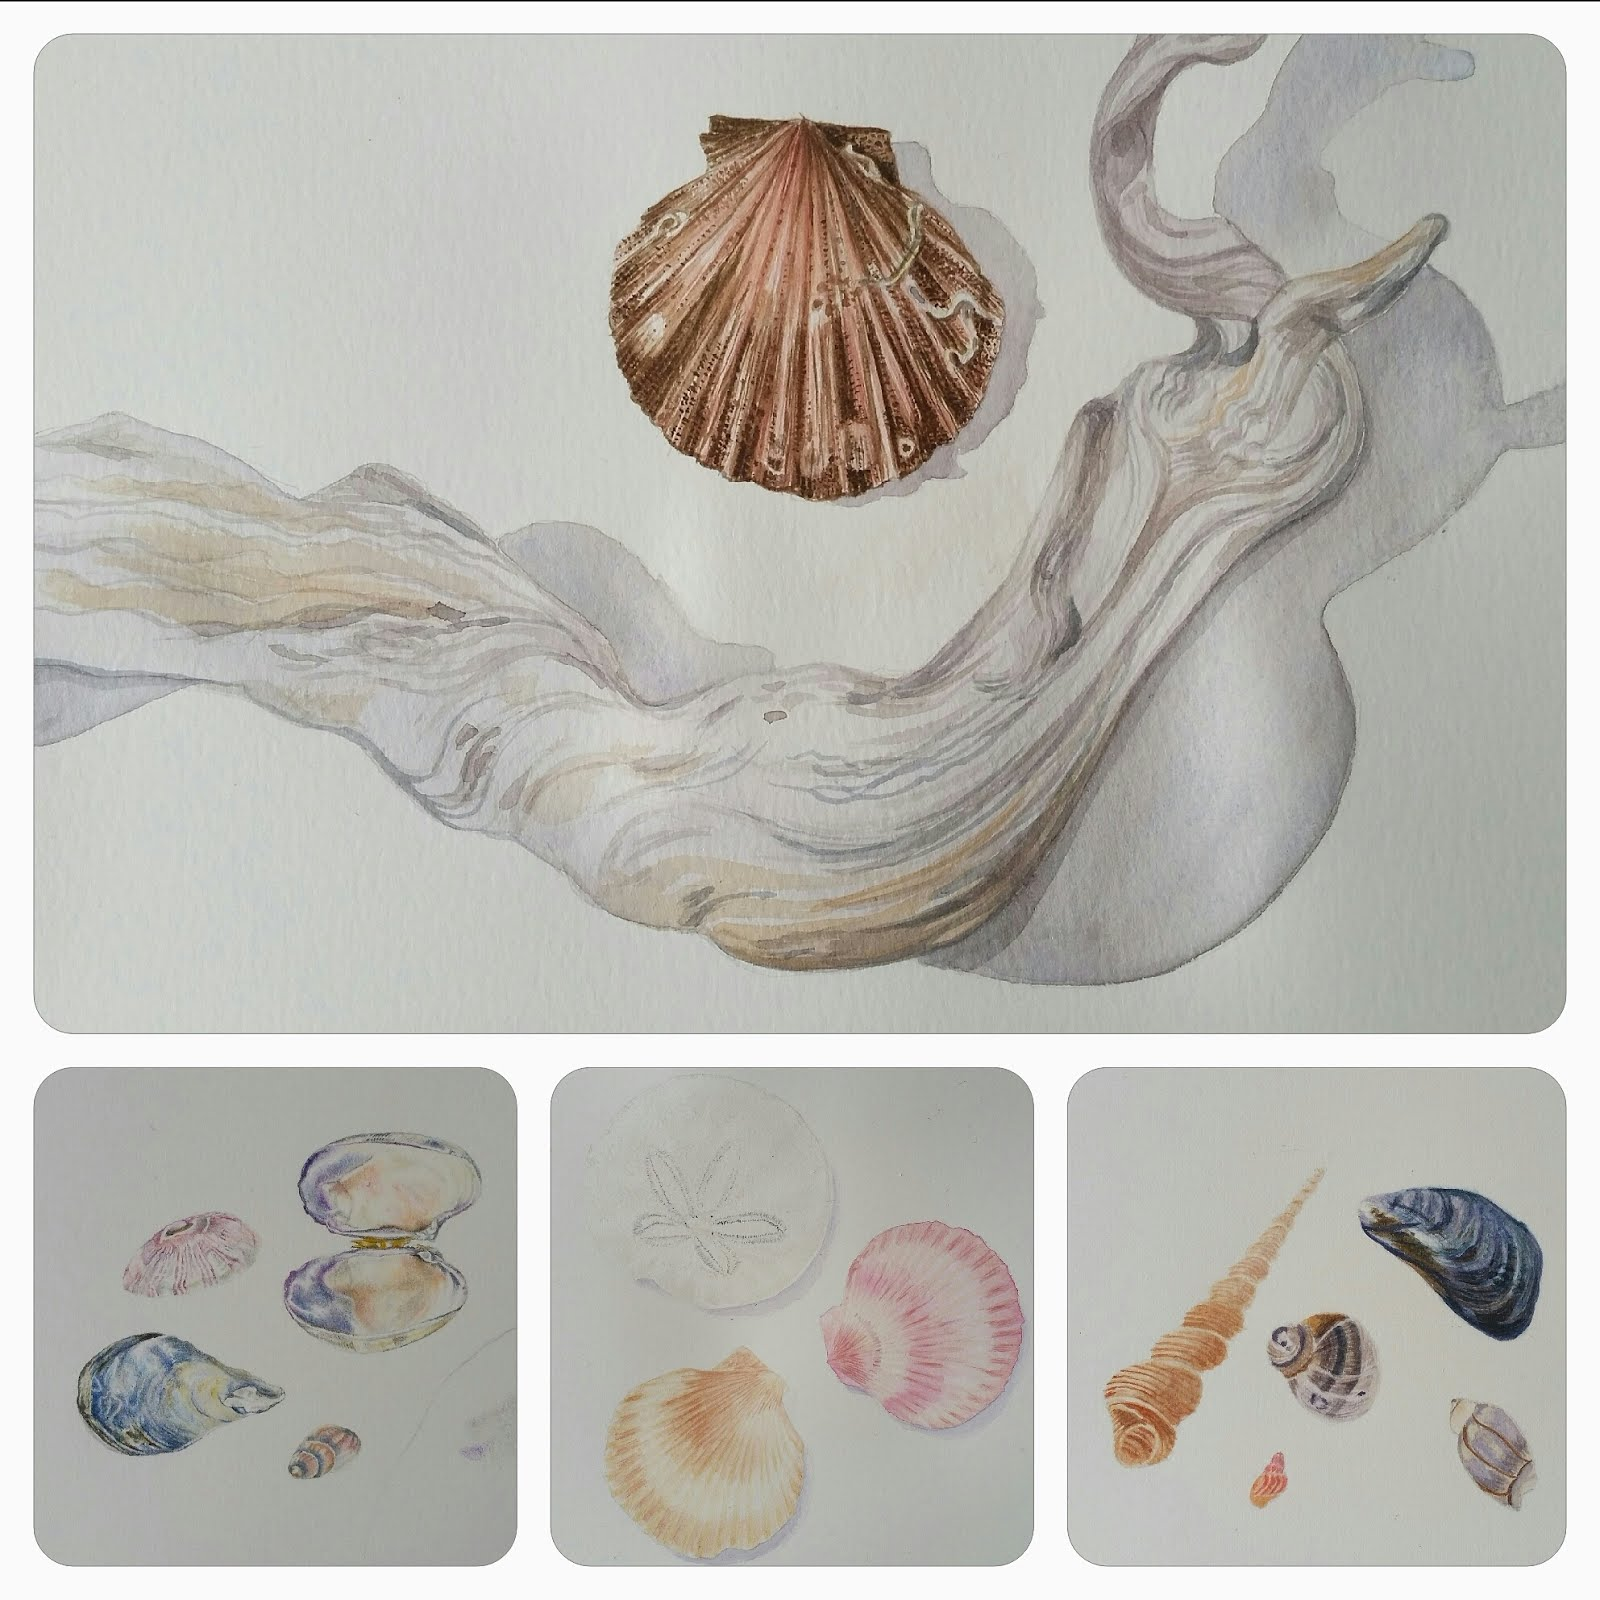 Student's work - The Seashore Palette